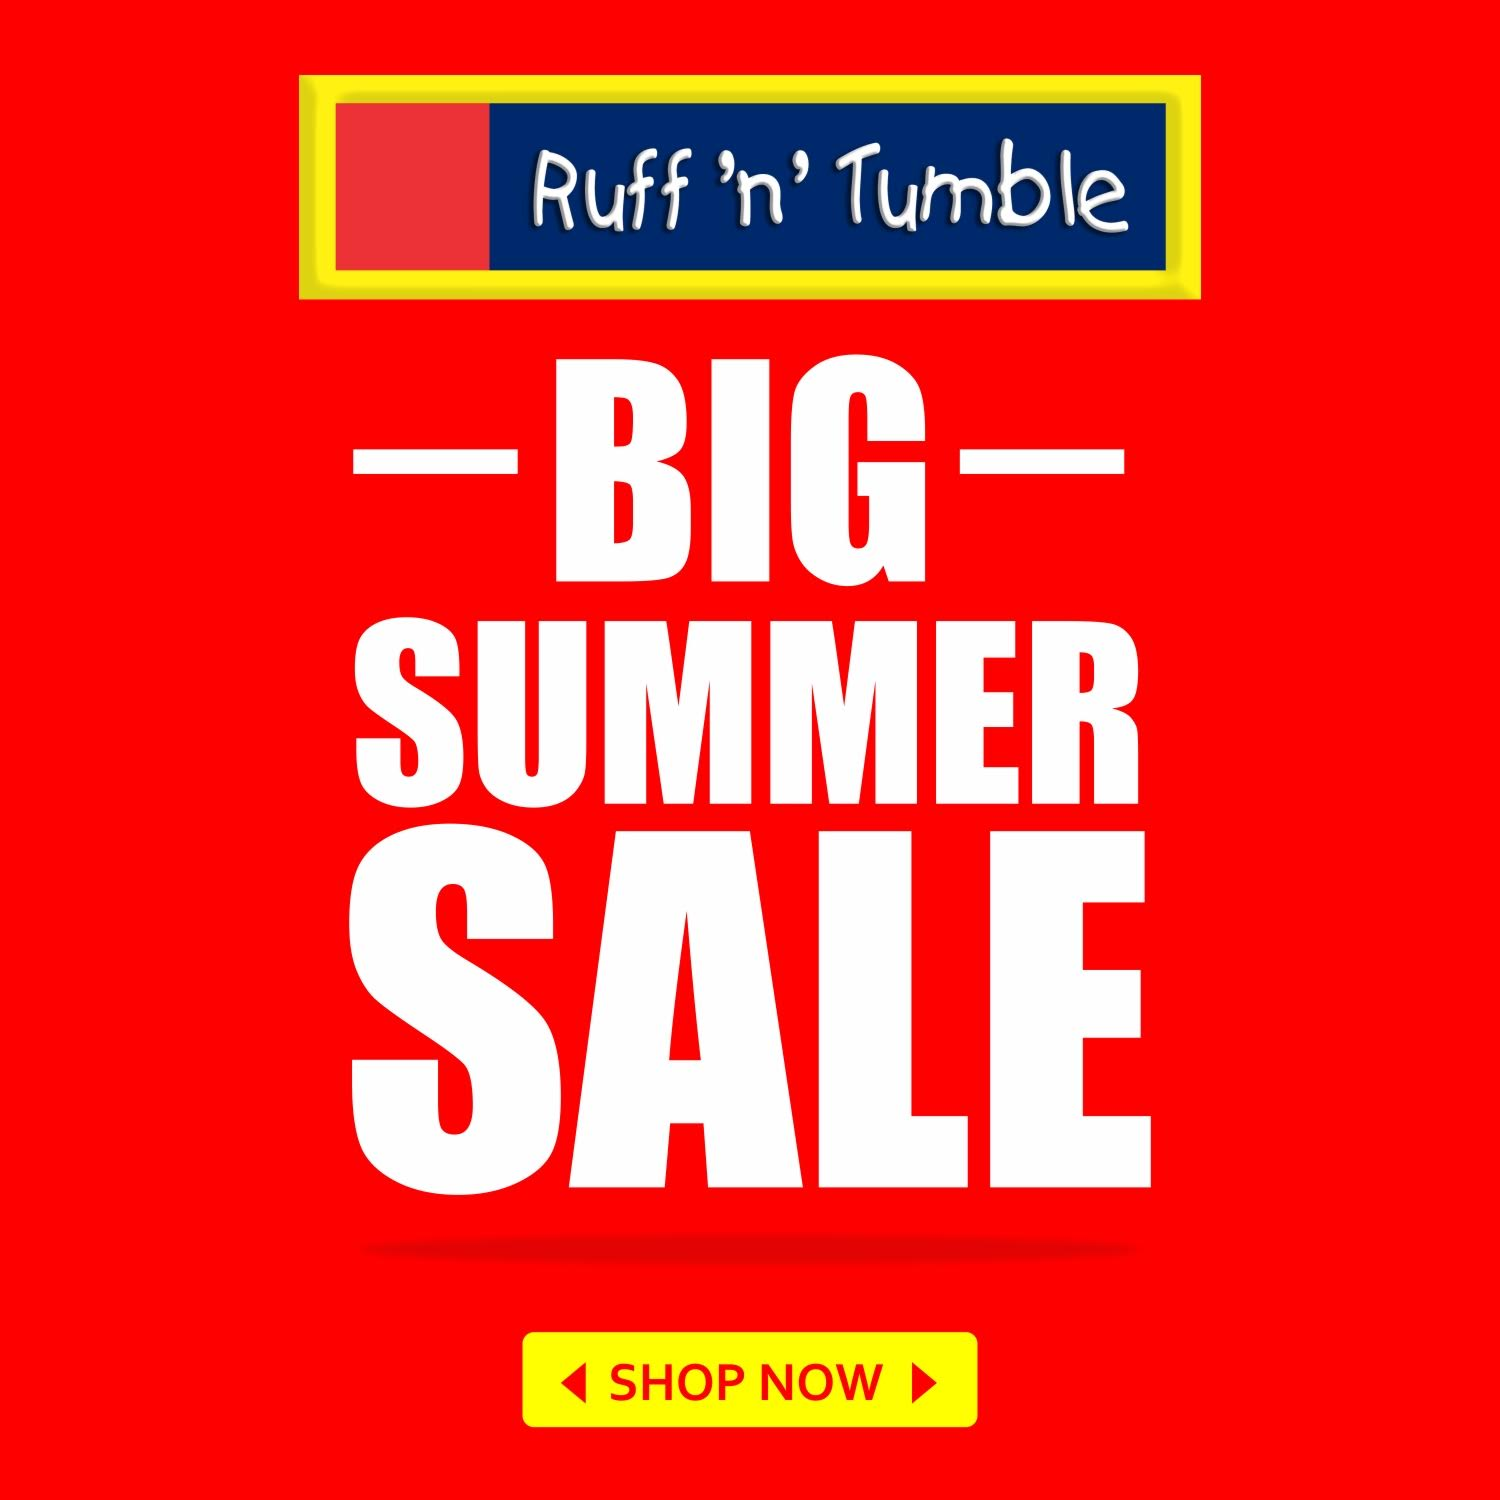 SHOP RUFF 'N' TUMBLE!